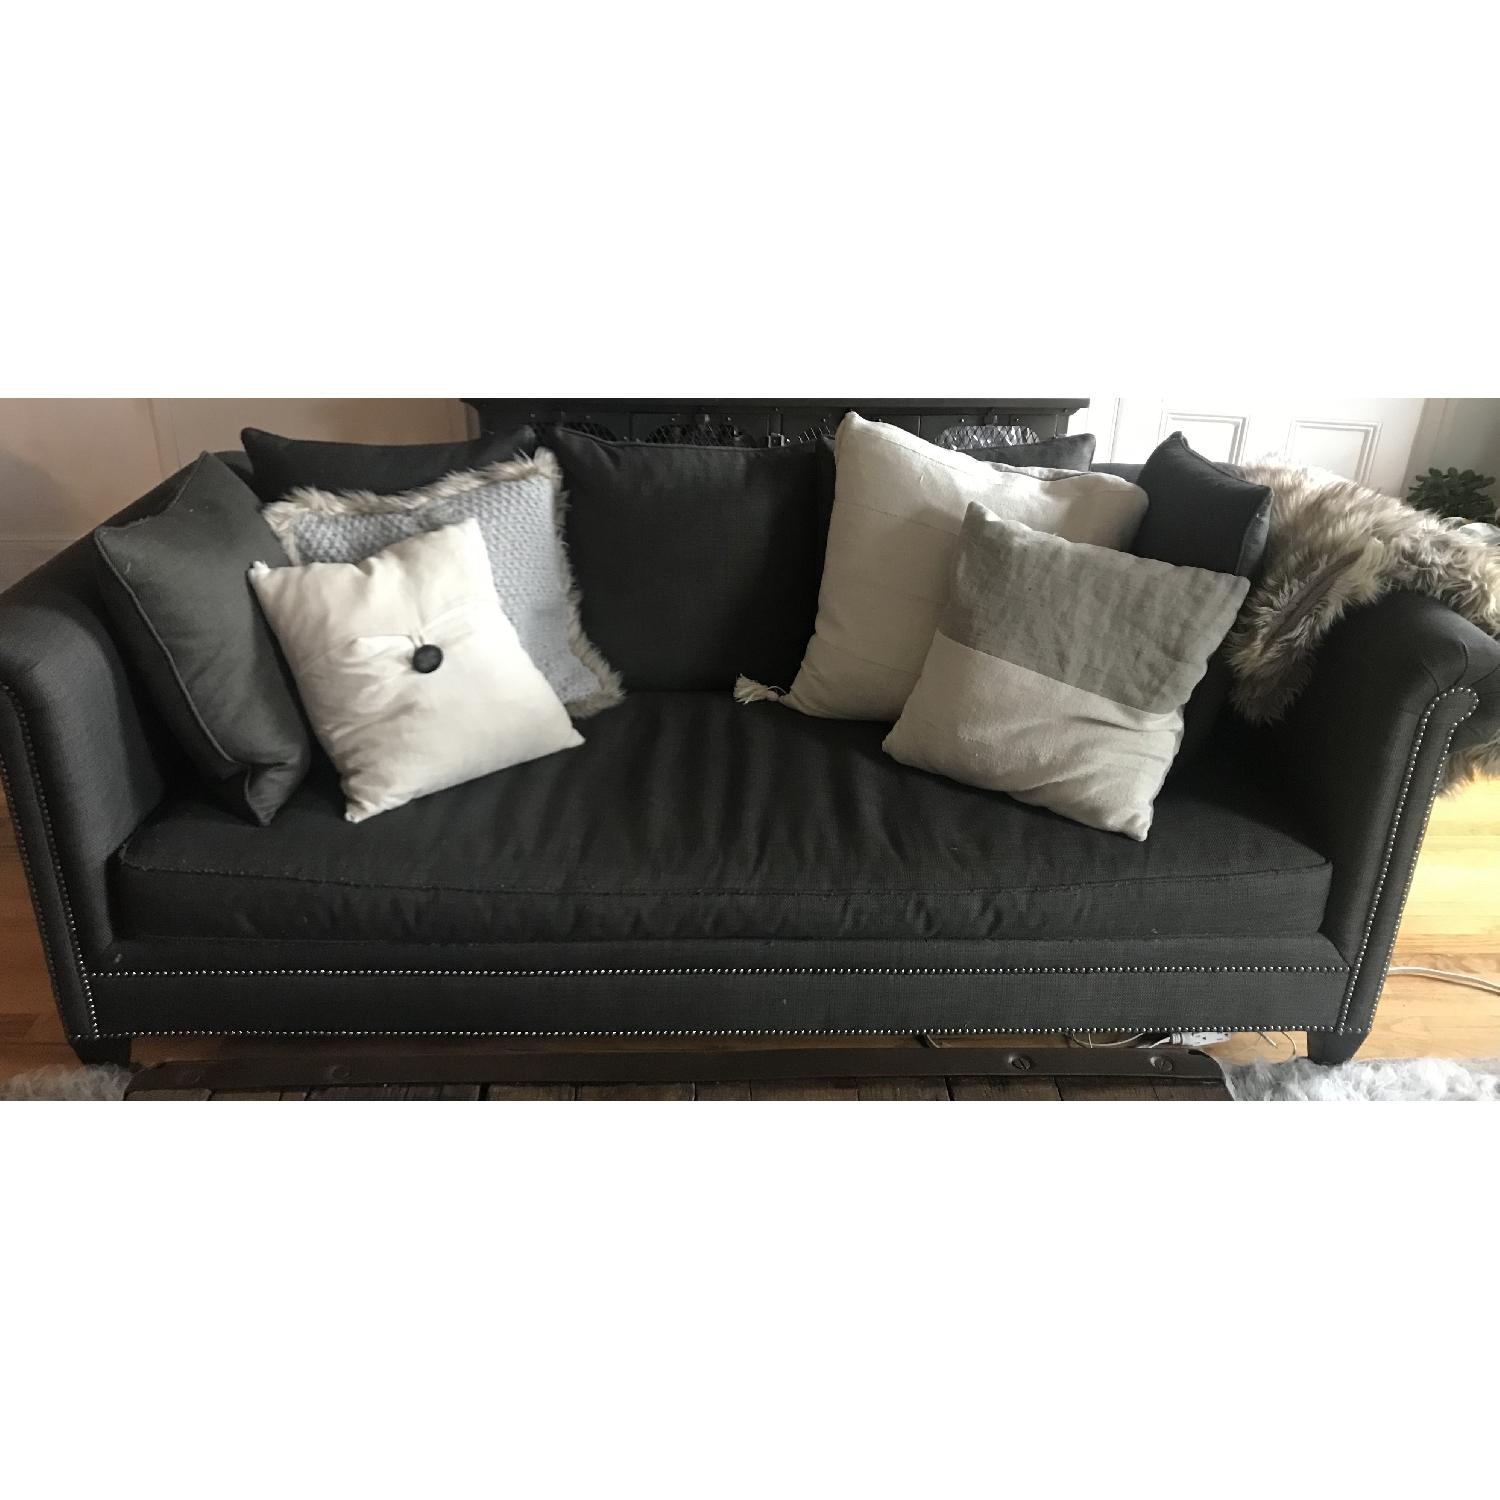 Crate & Barrel 3 Seater Down Filled Sofa - image-2